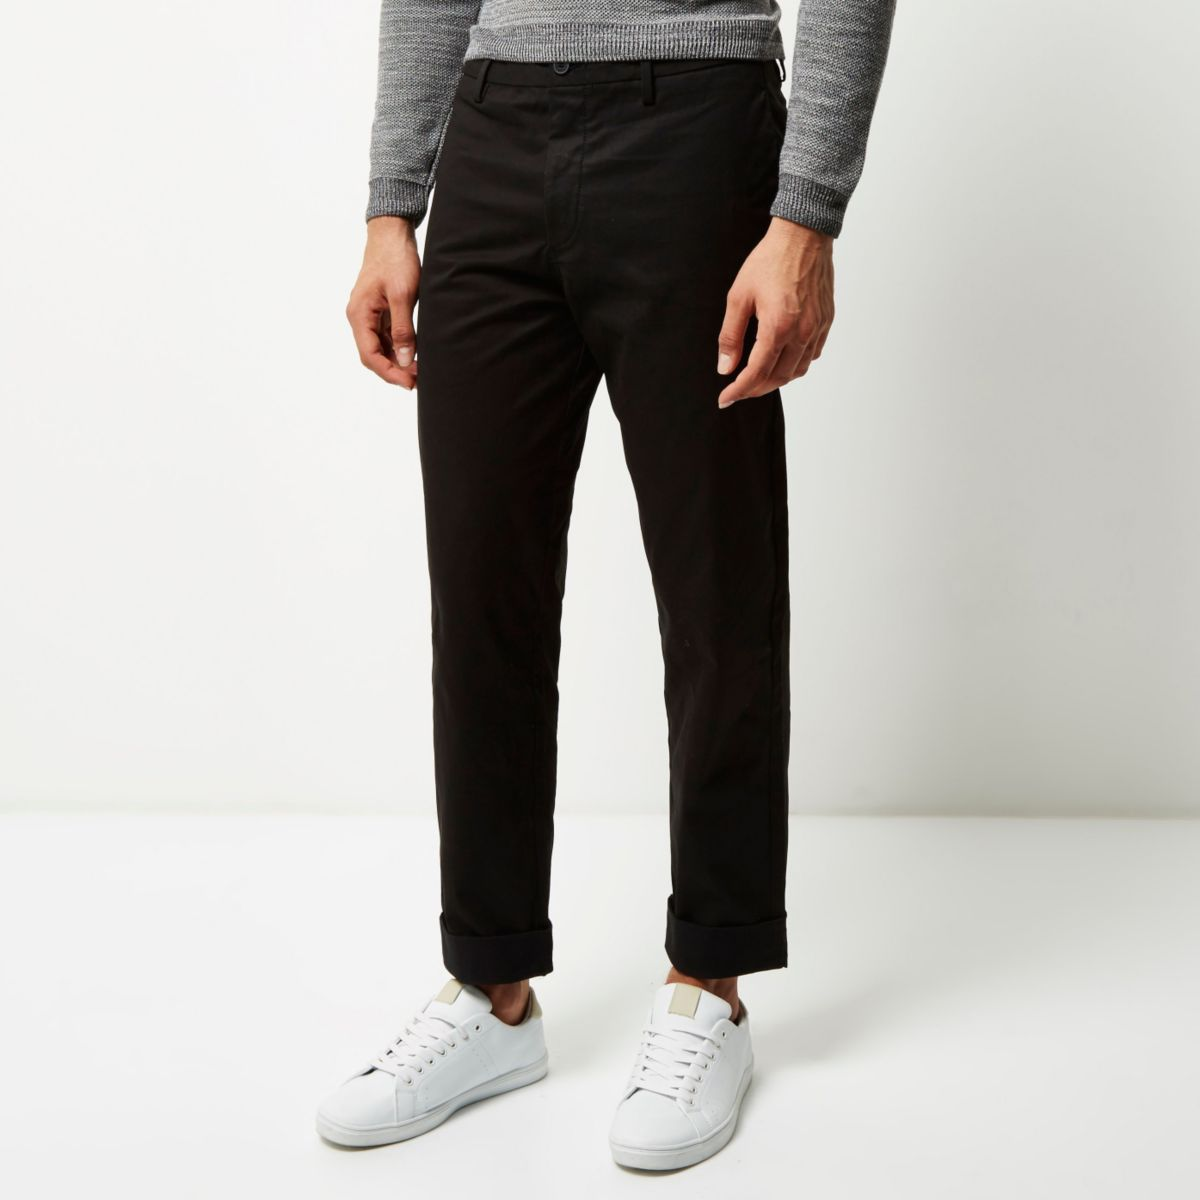 Black wide leg chino pants